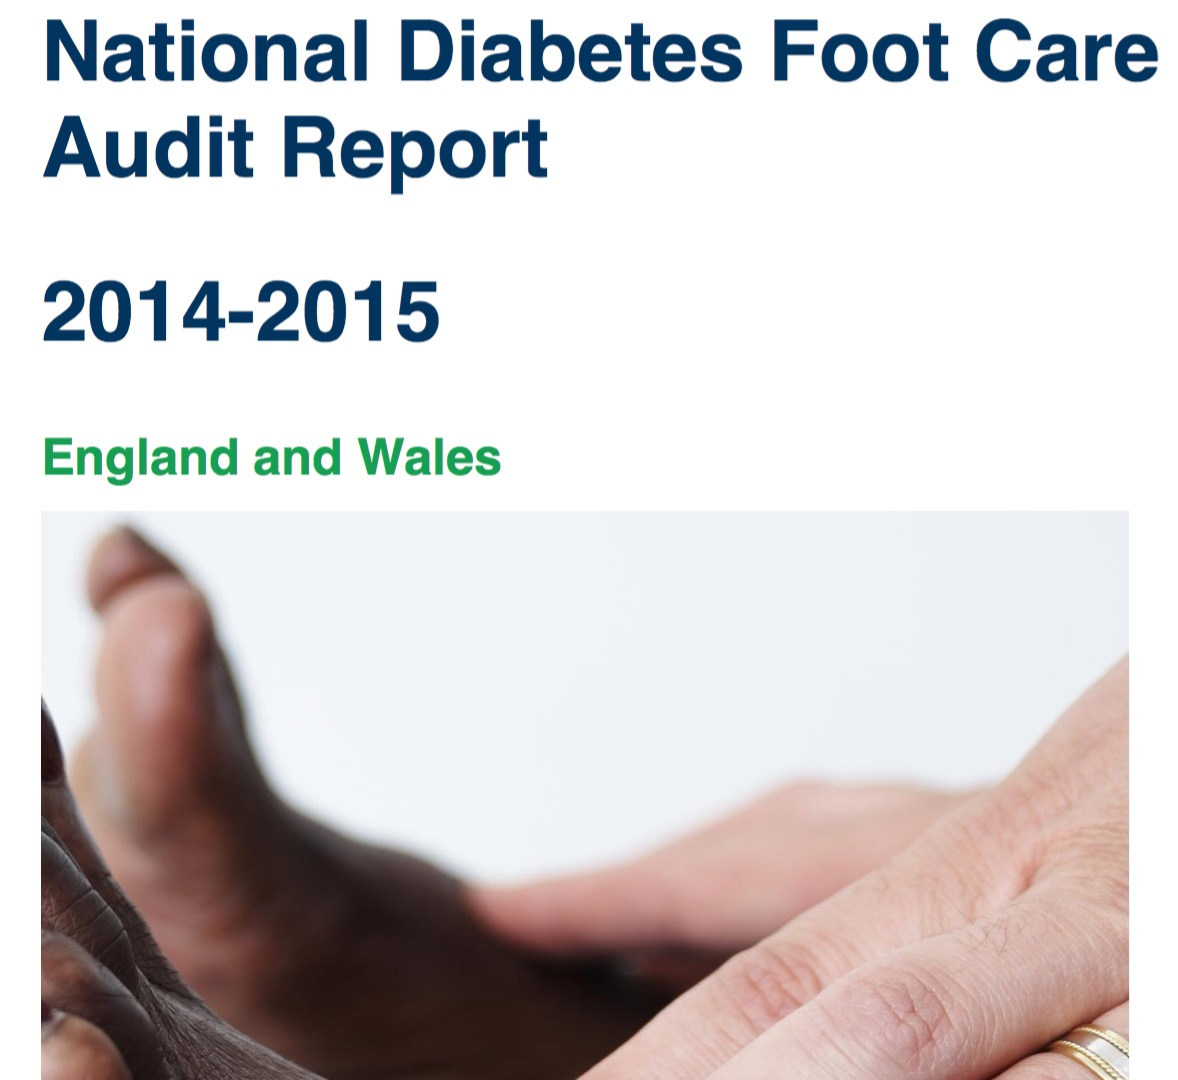 The National Diabetic Foot Audit Report